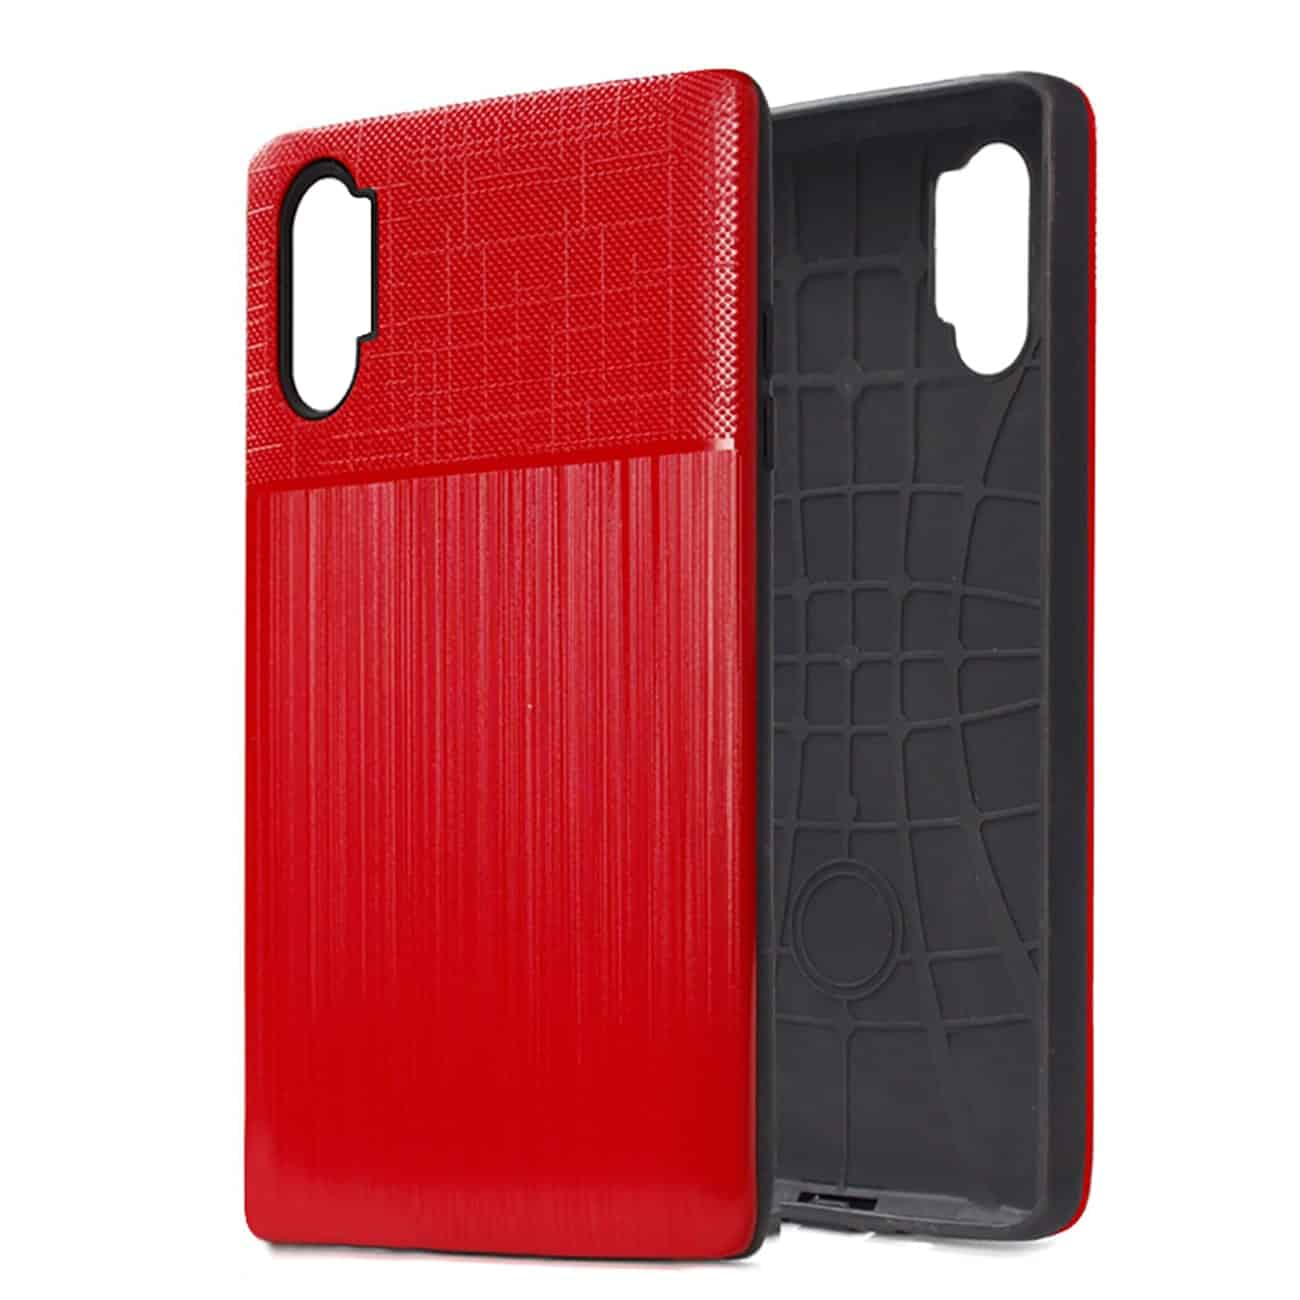 ISTIK SAMSUNG GALAXY NOTE 10 PLUS Lightweight Case In Red